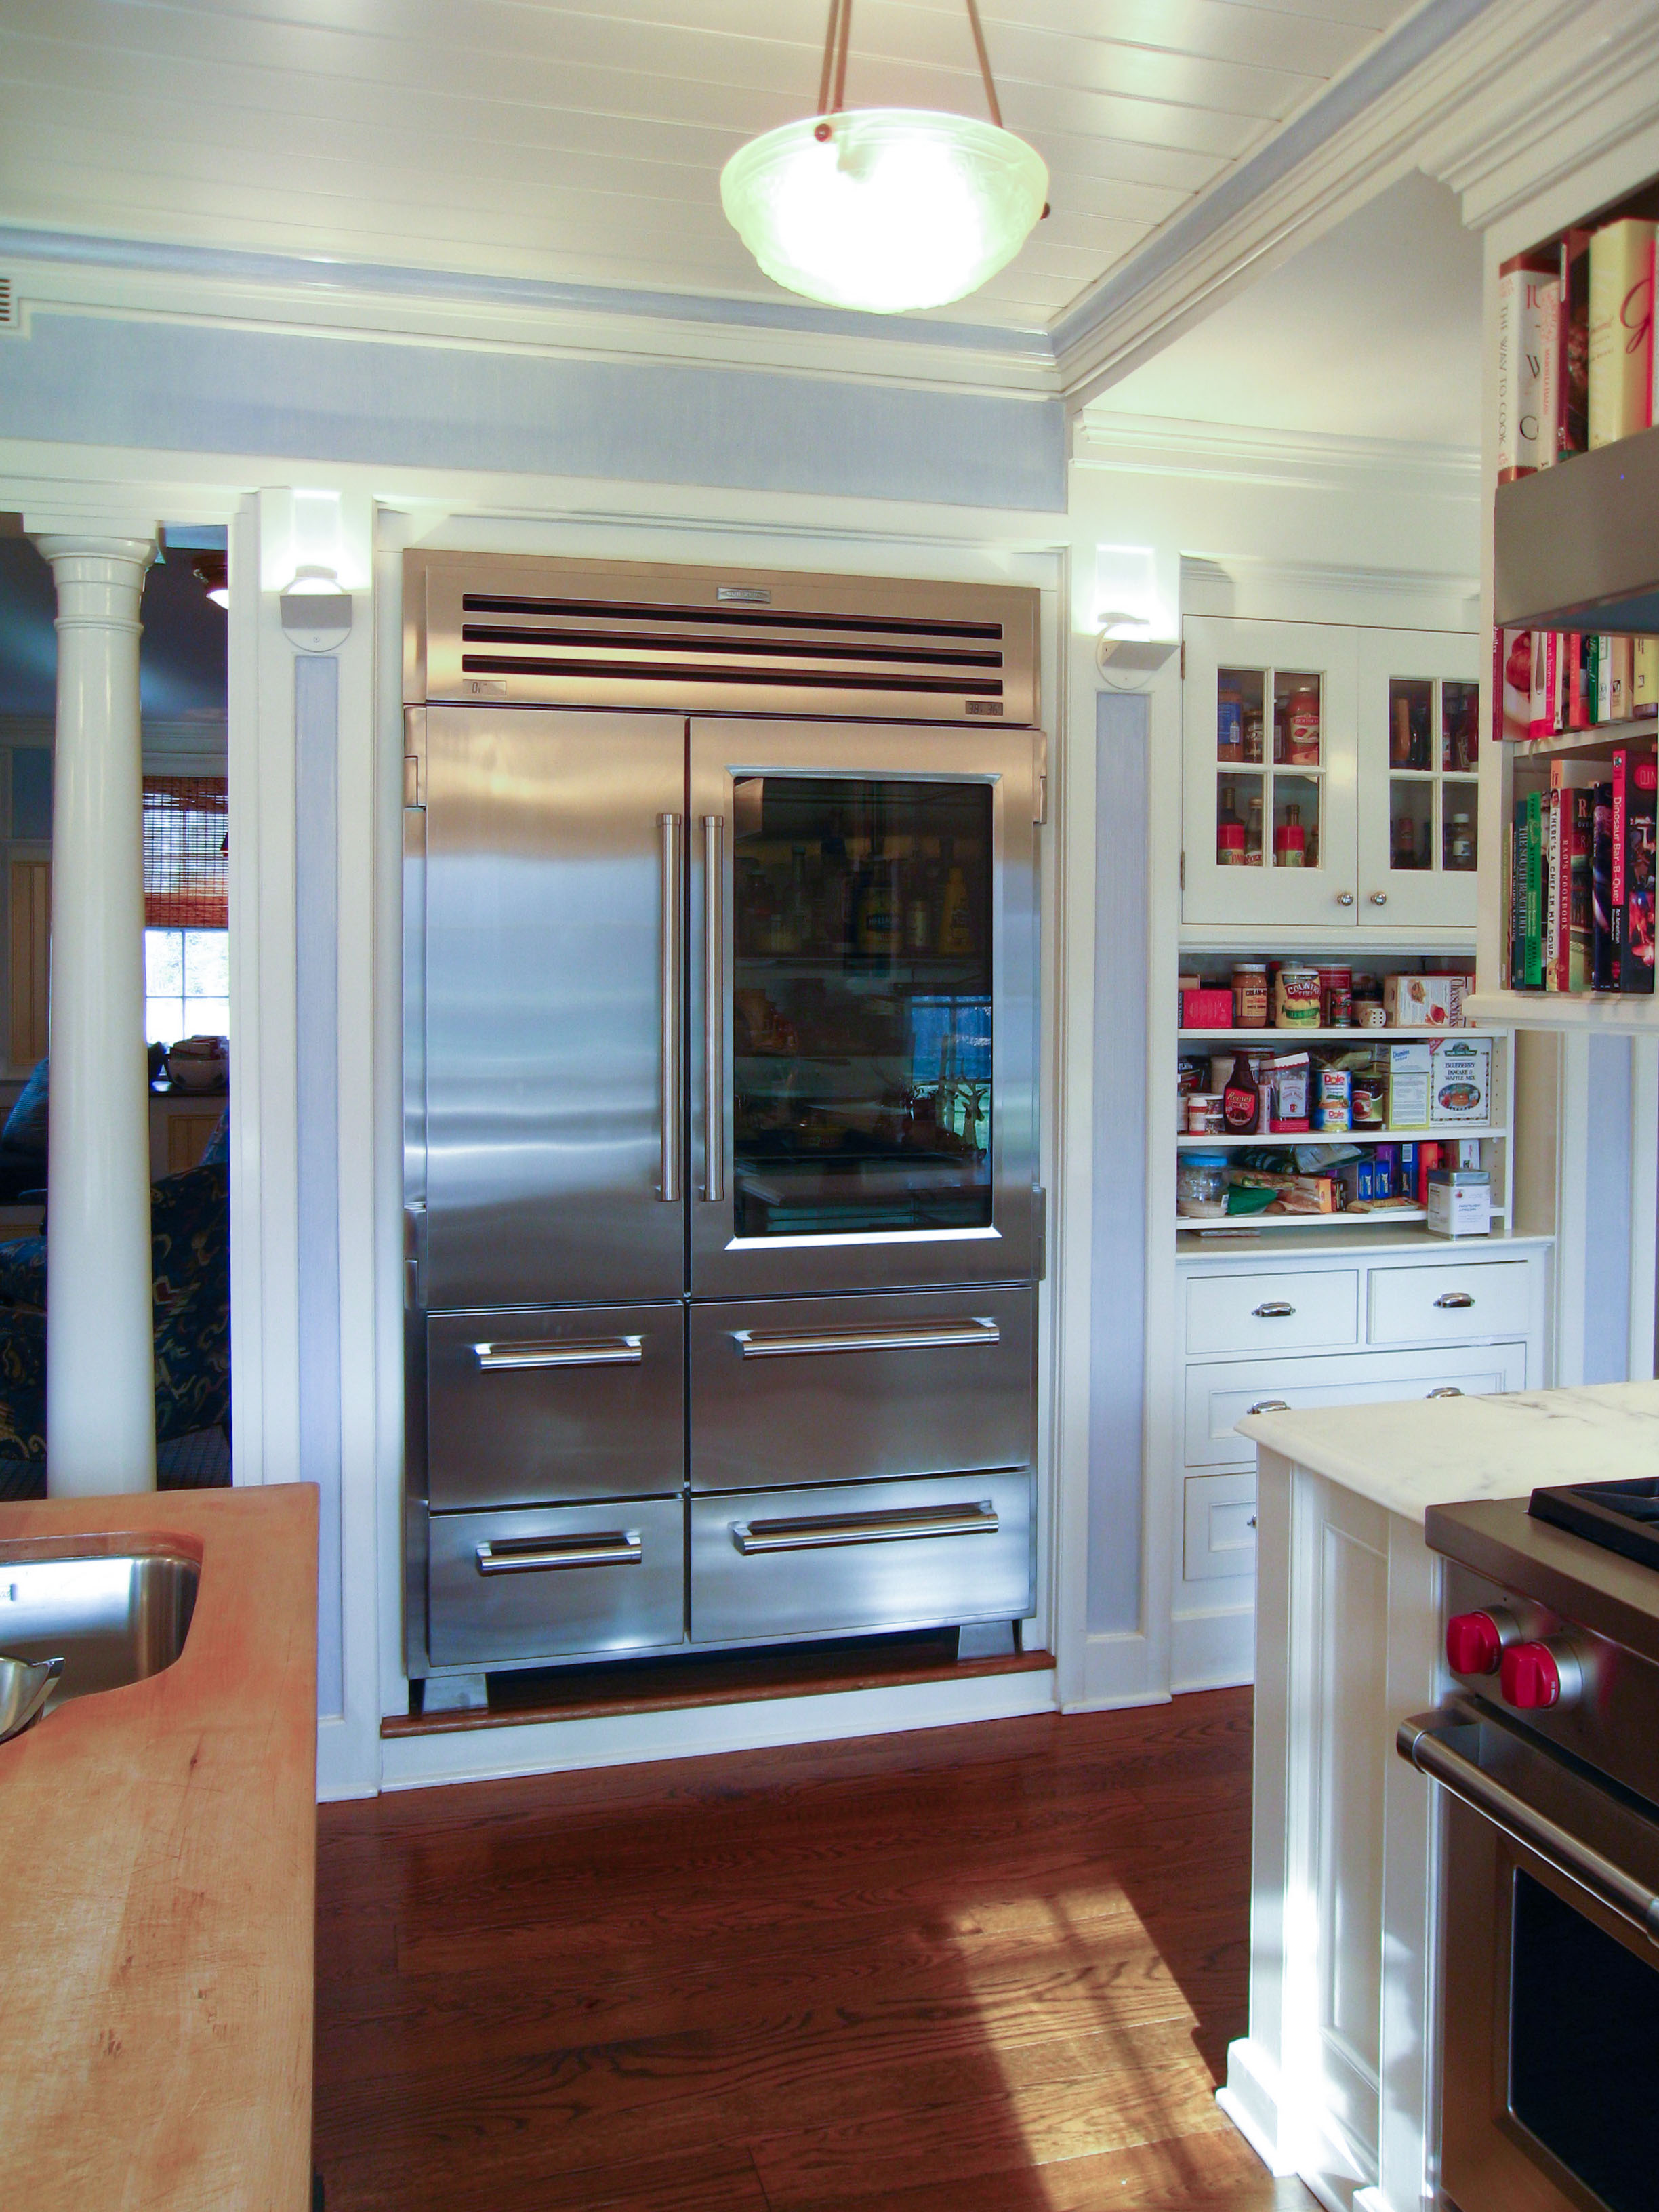 Glass door fridge kitchen - Luxurious And Large Glass Door Residential Refrigerator With Double Door In Kitchen With White Cabinetry And